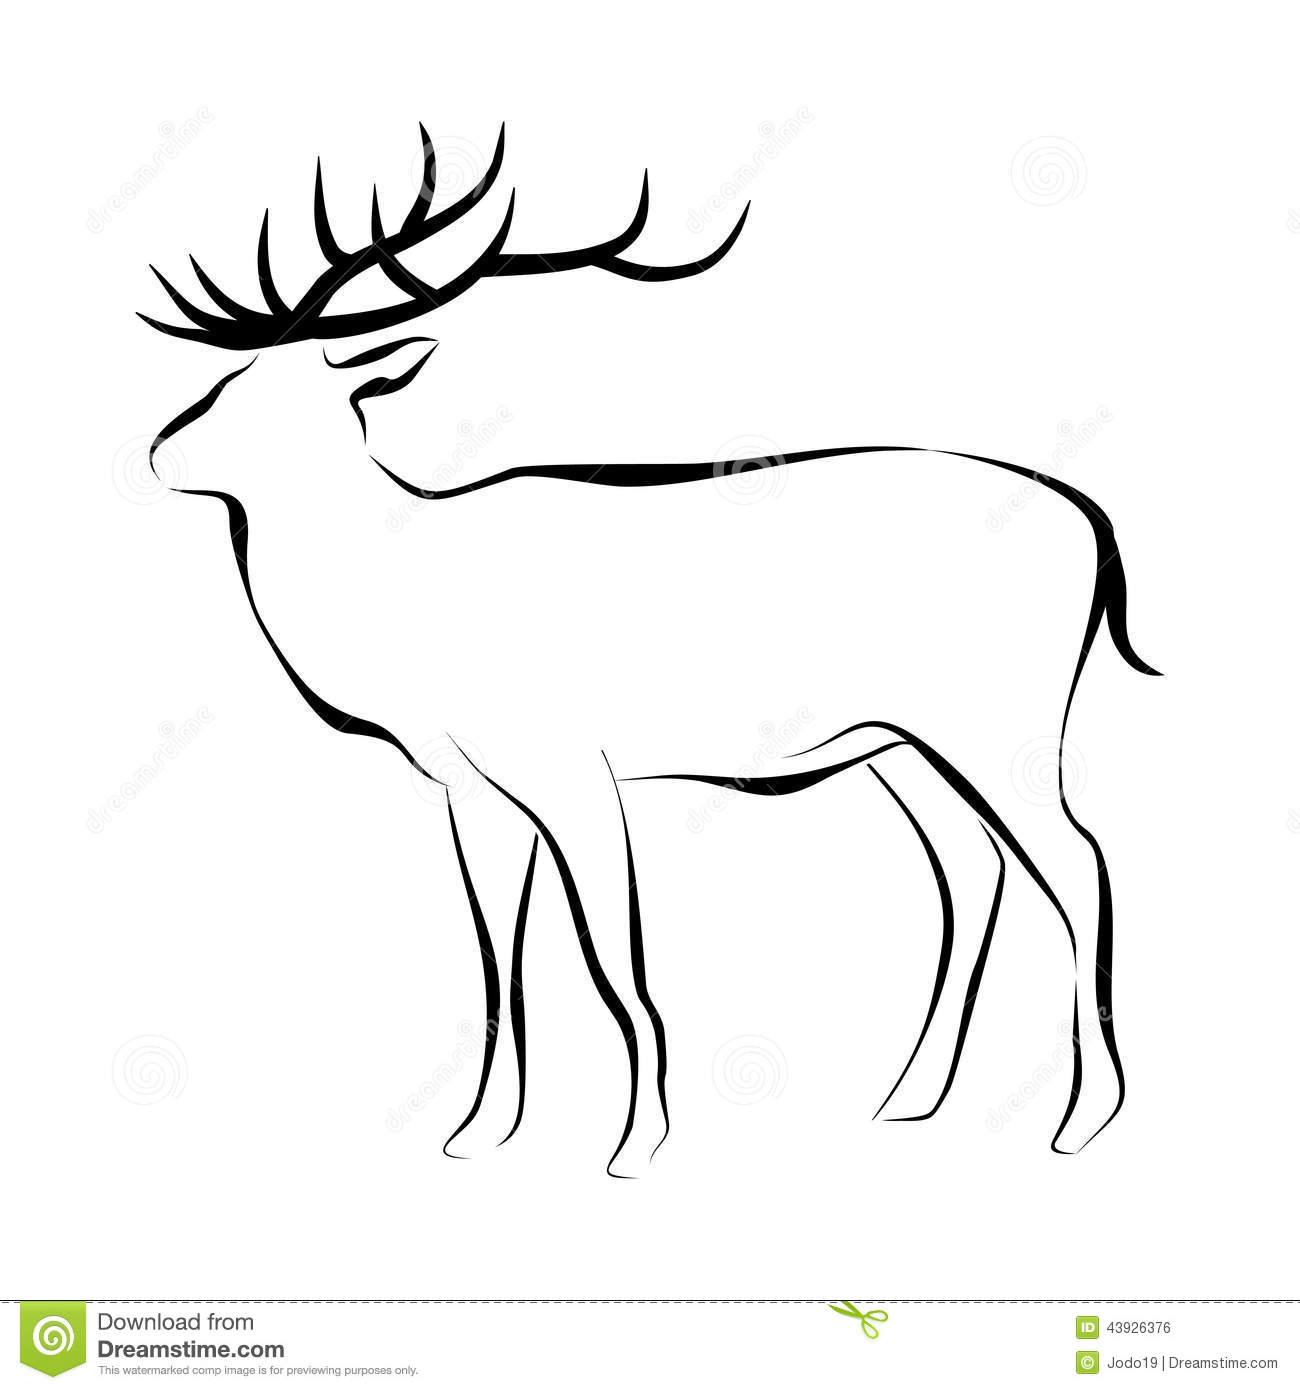 Deer Contour Line Drawing : Contour deer stock illustration image